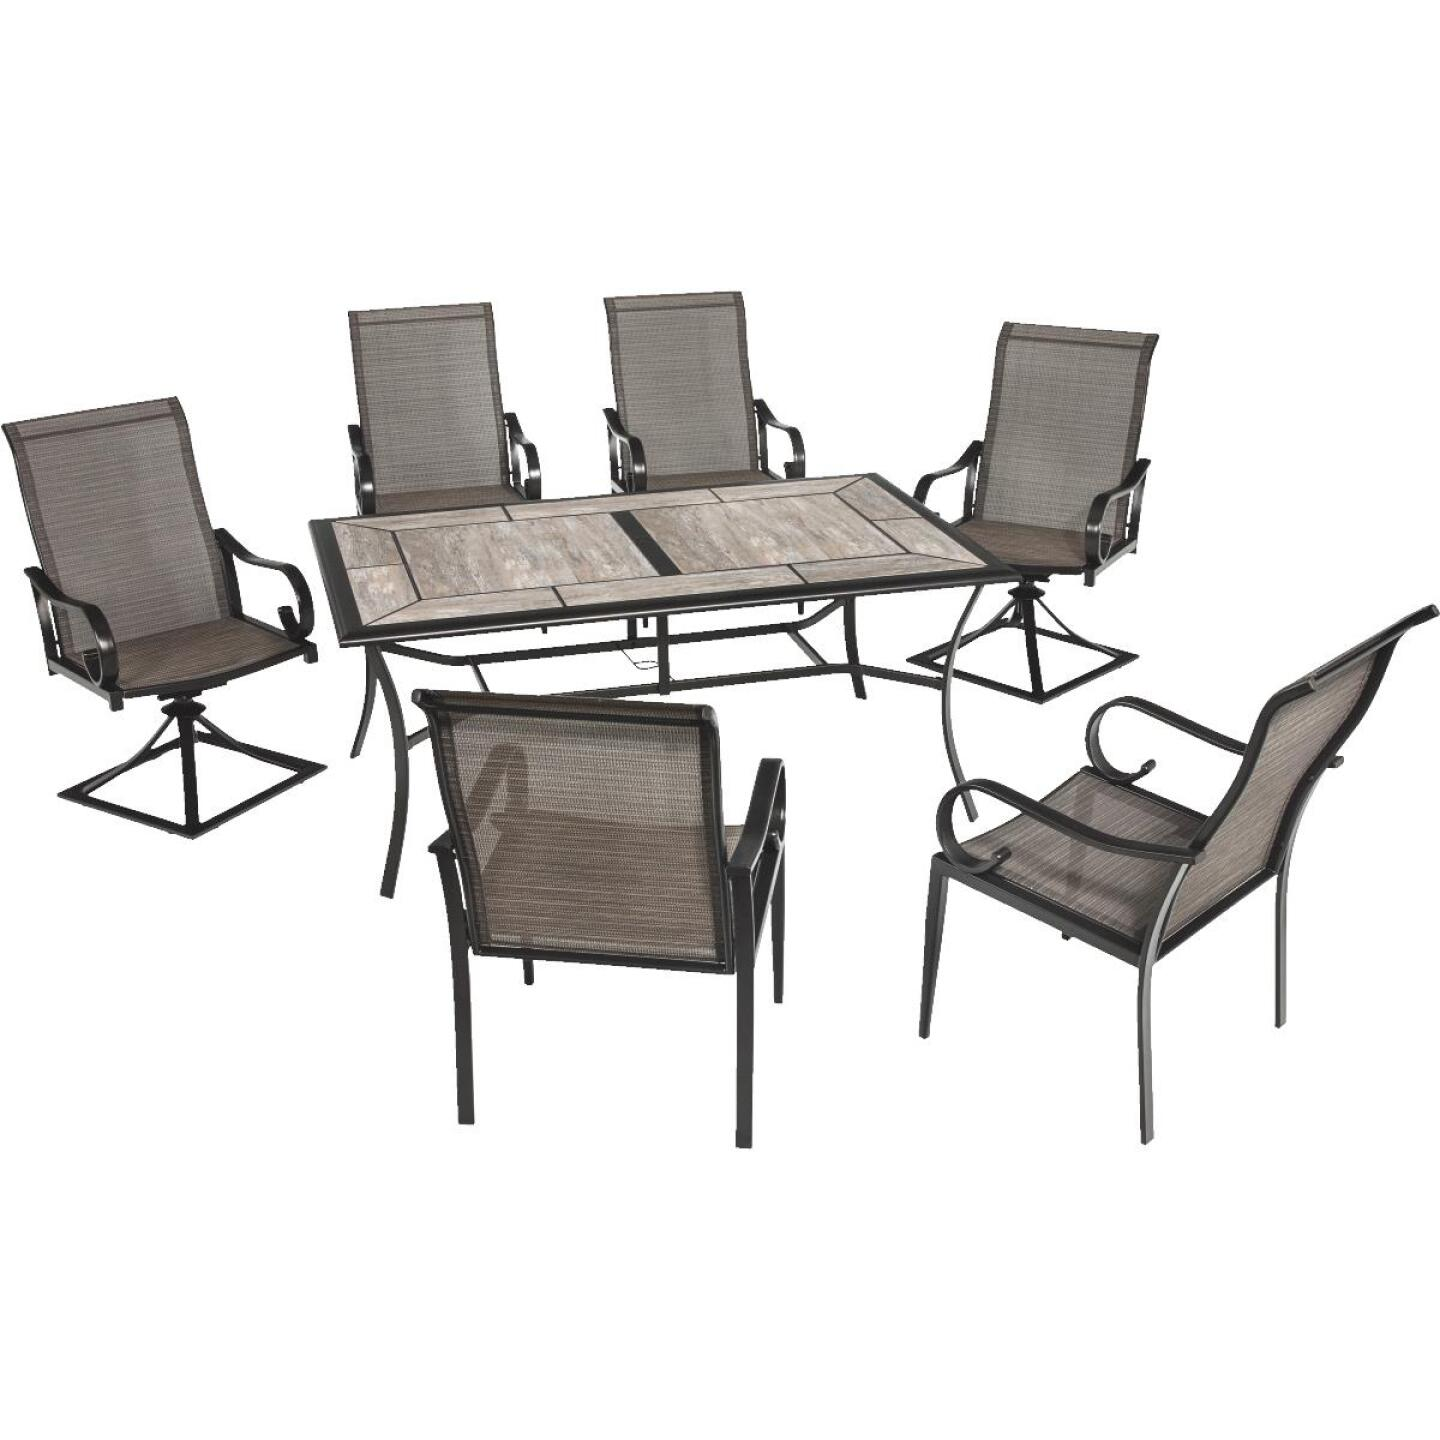 Outdoor Expressions Berkshire 7-Piece Dining Set Image 50